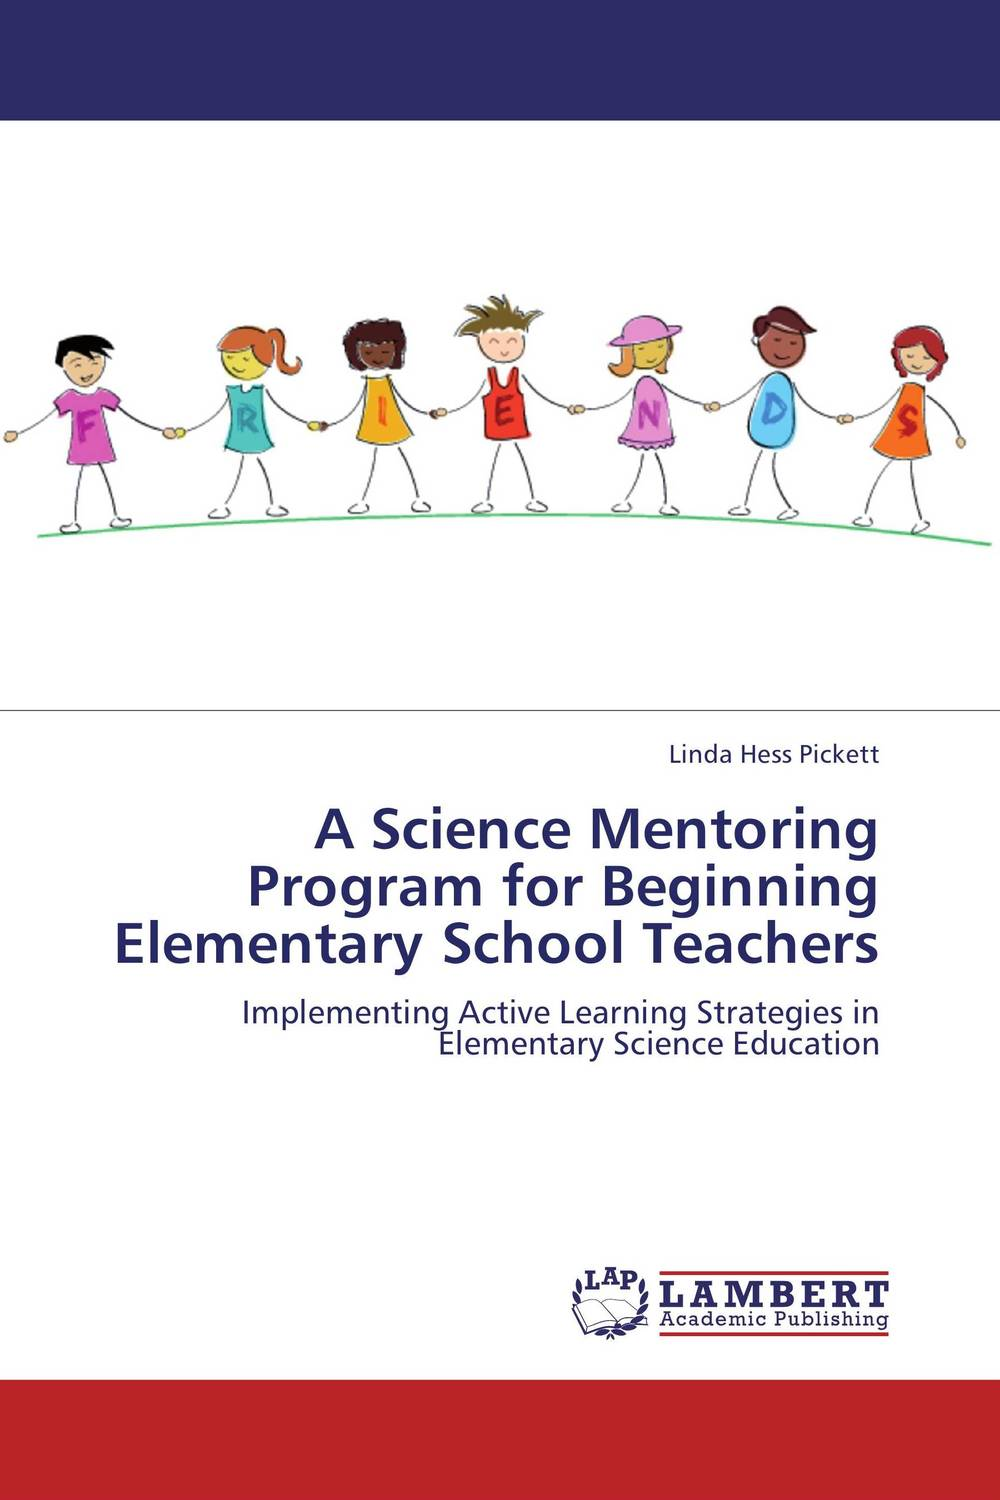 A Science Mentoring Program for Beginning Elementary School Teachers teachers as team leaders in a professional learning community